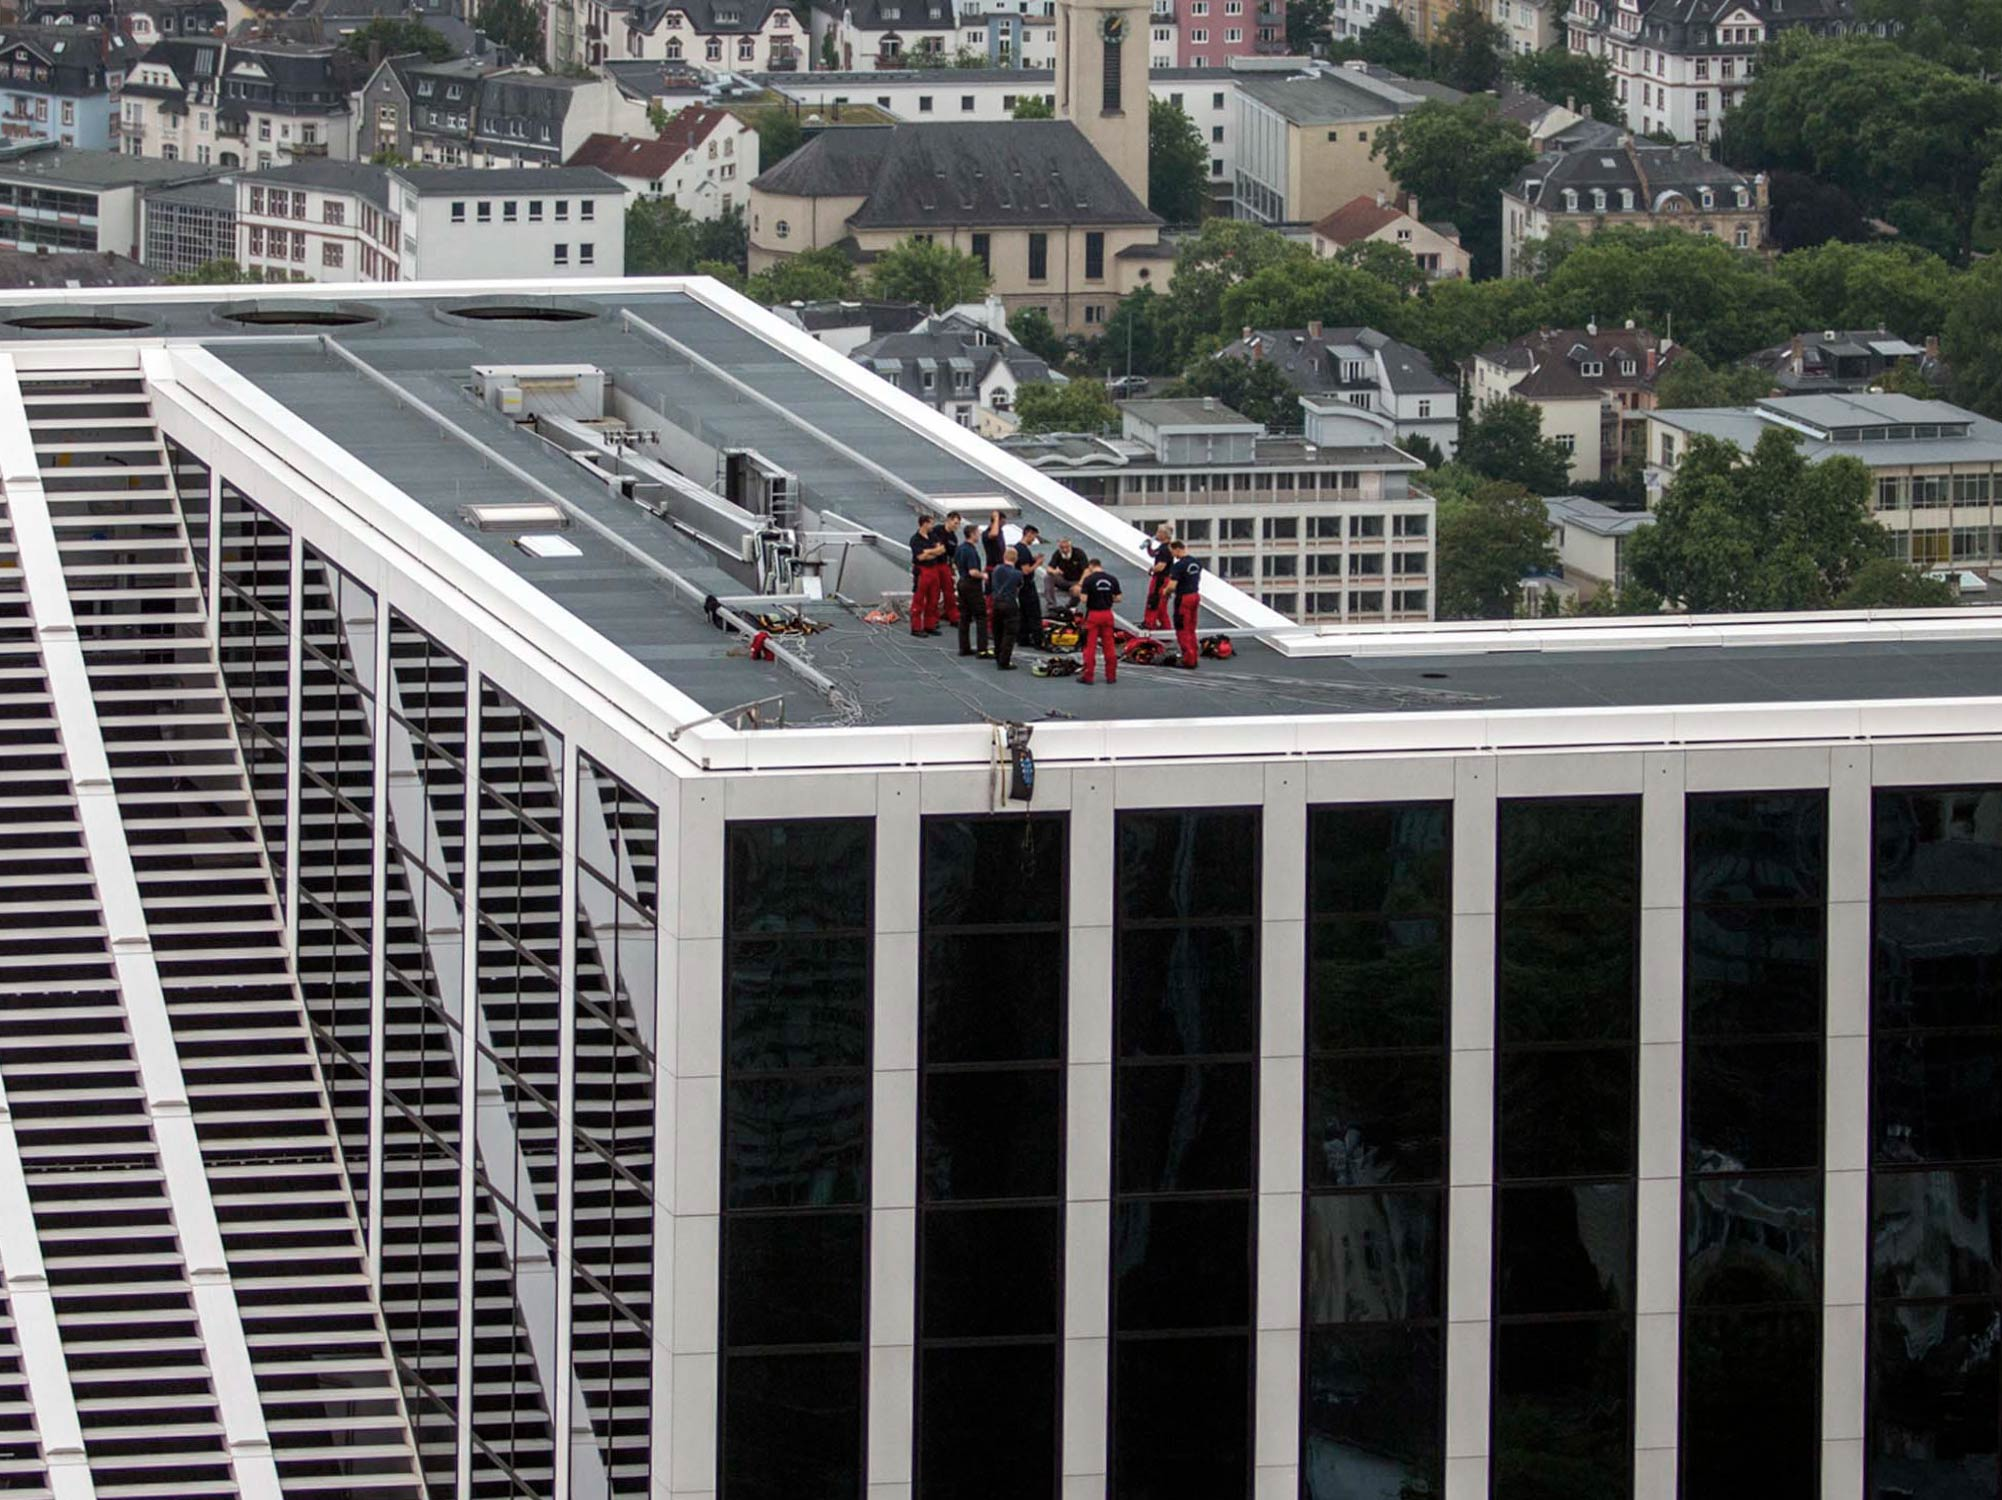 Height Rescue Team of Frankfurt Fire Brigade